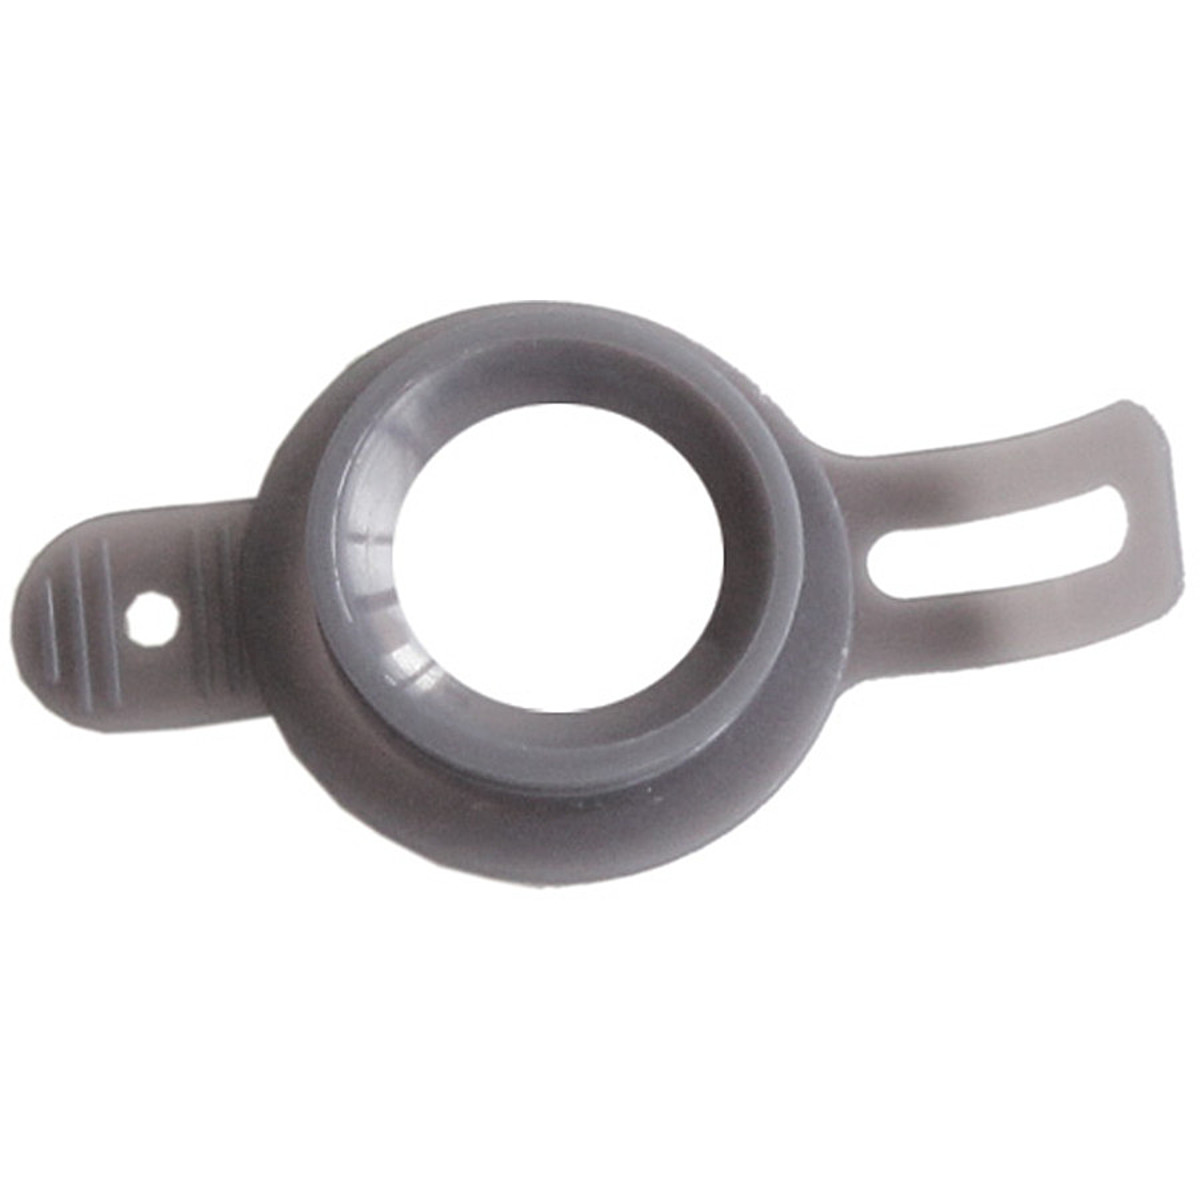 Exped Flat Valve Adapter